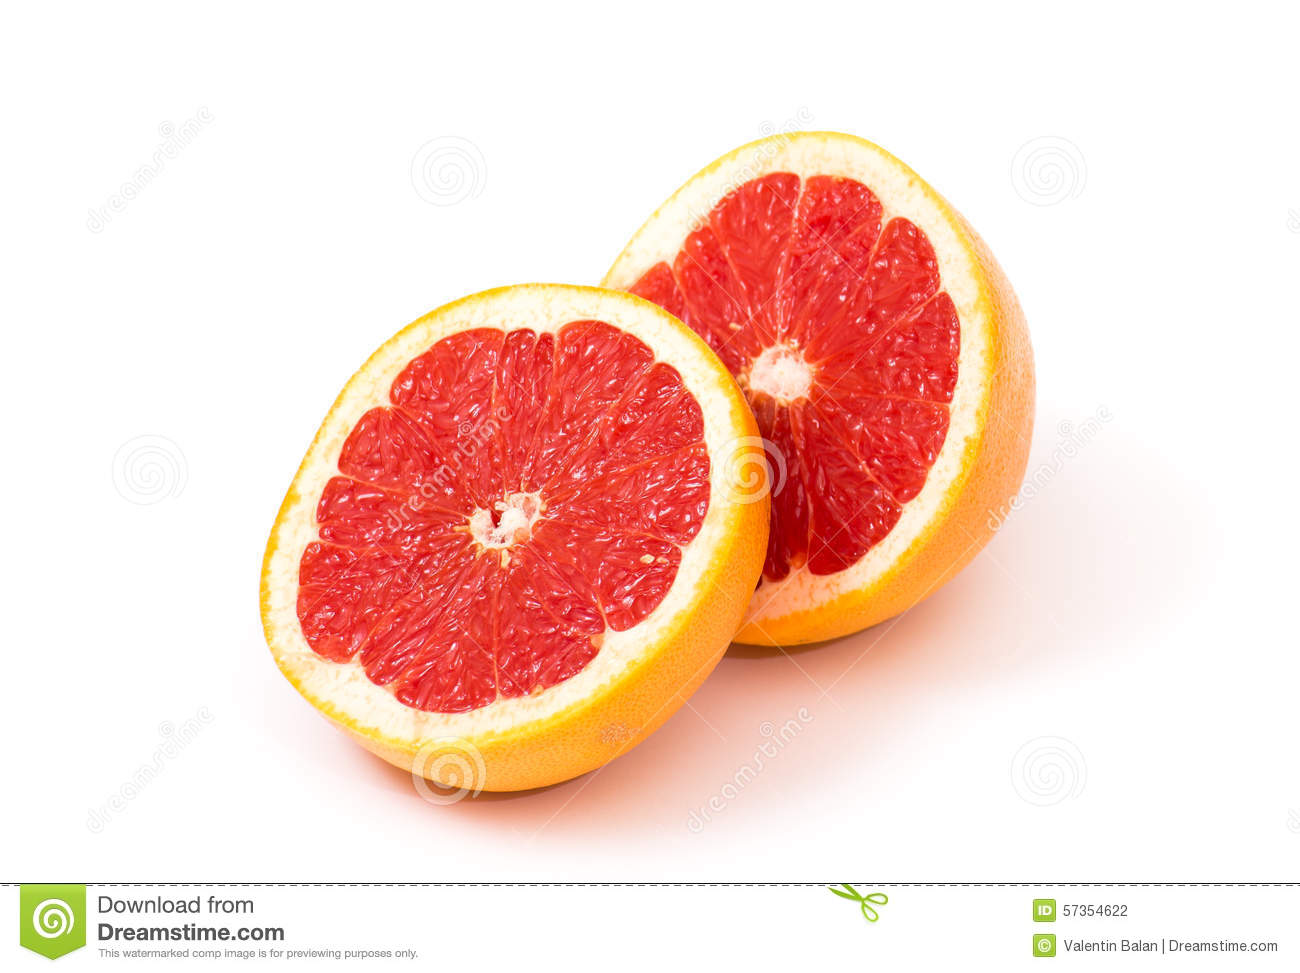 Grapefruit Halves Stock Photo - Image: 57354622